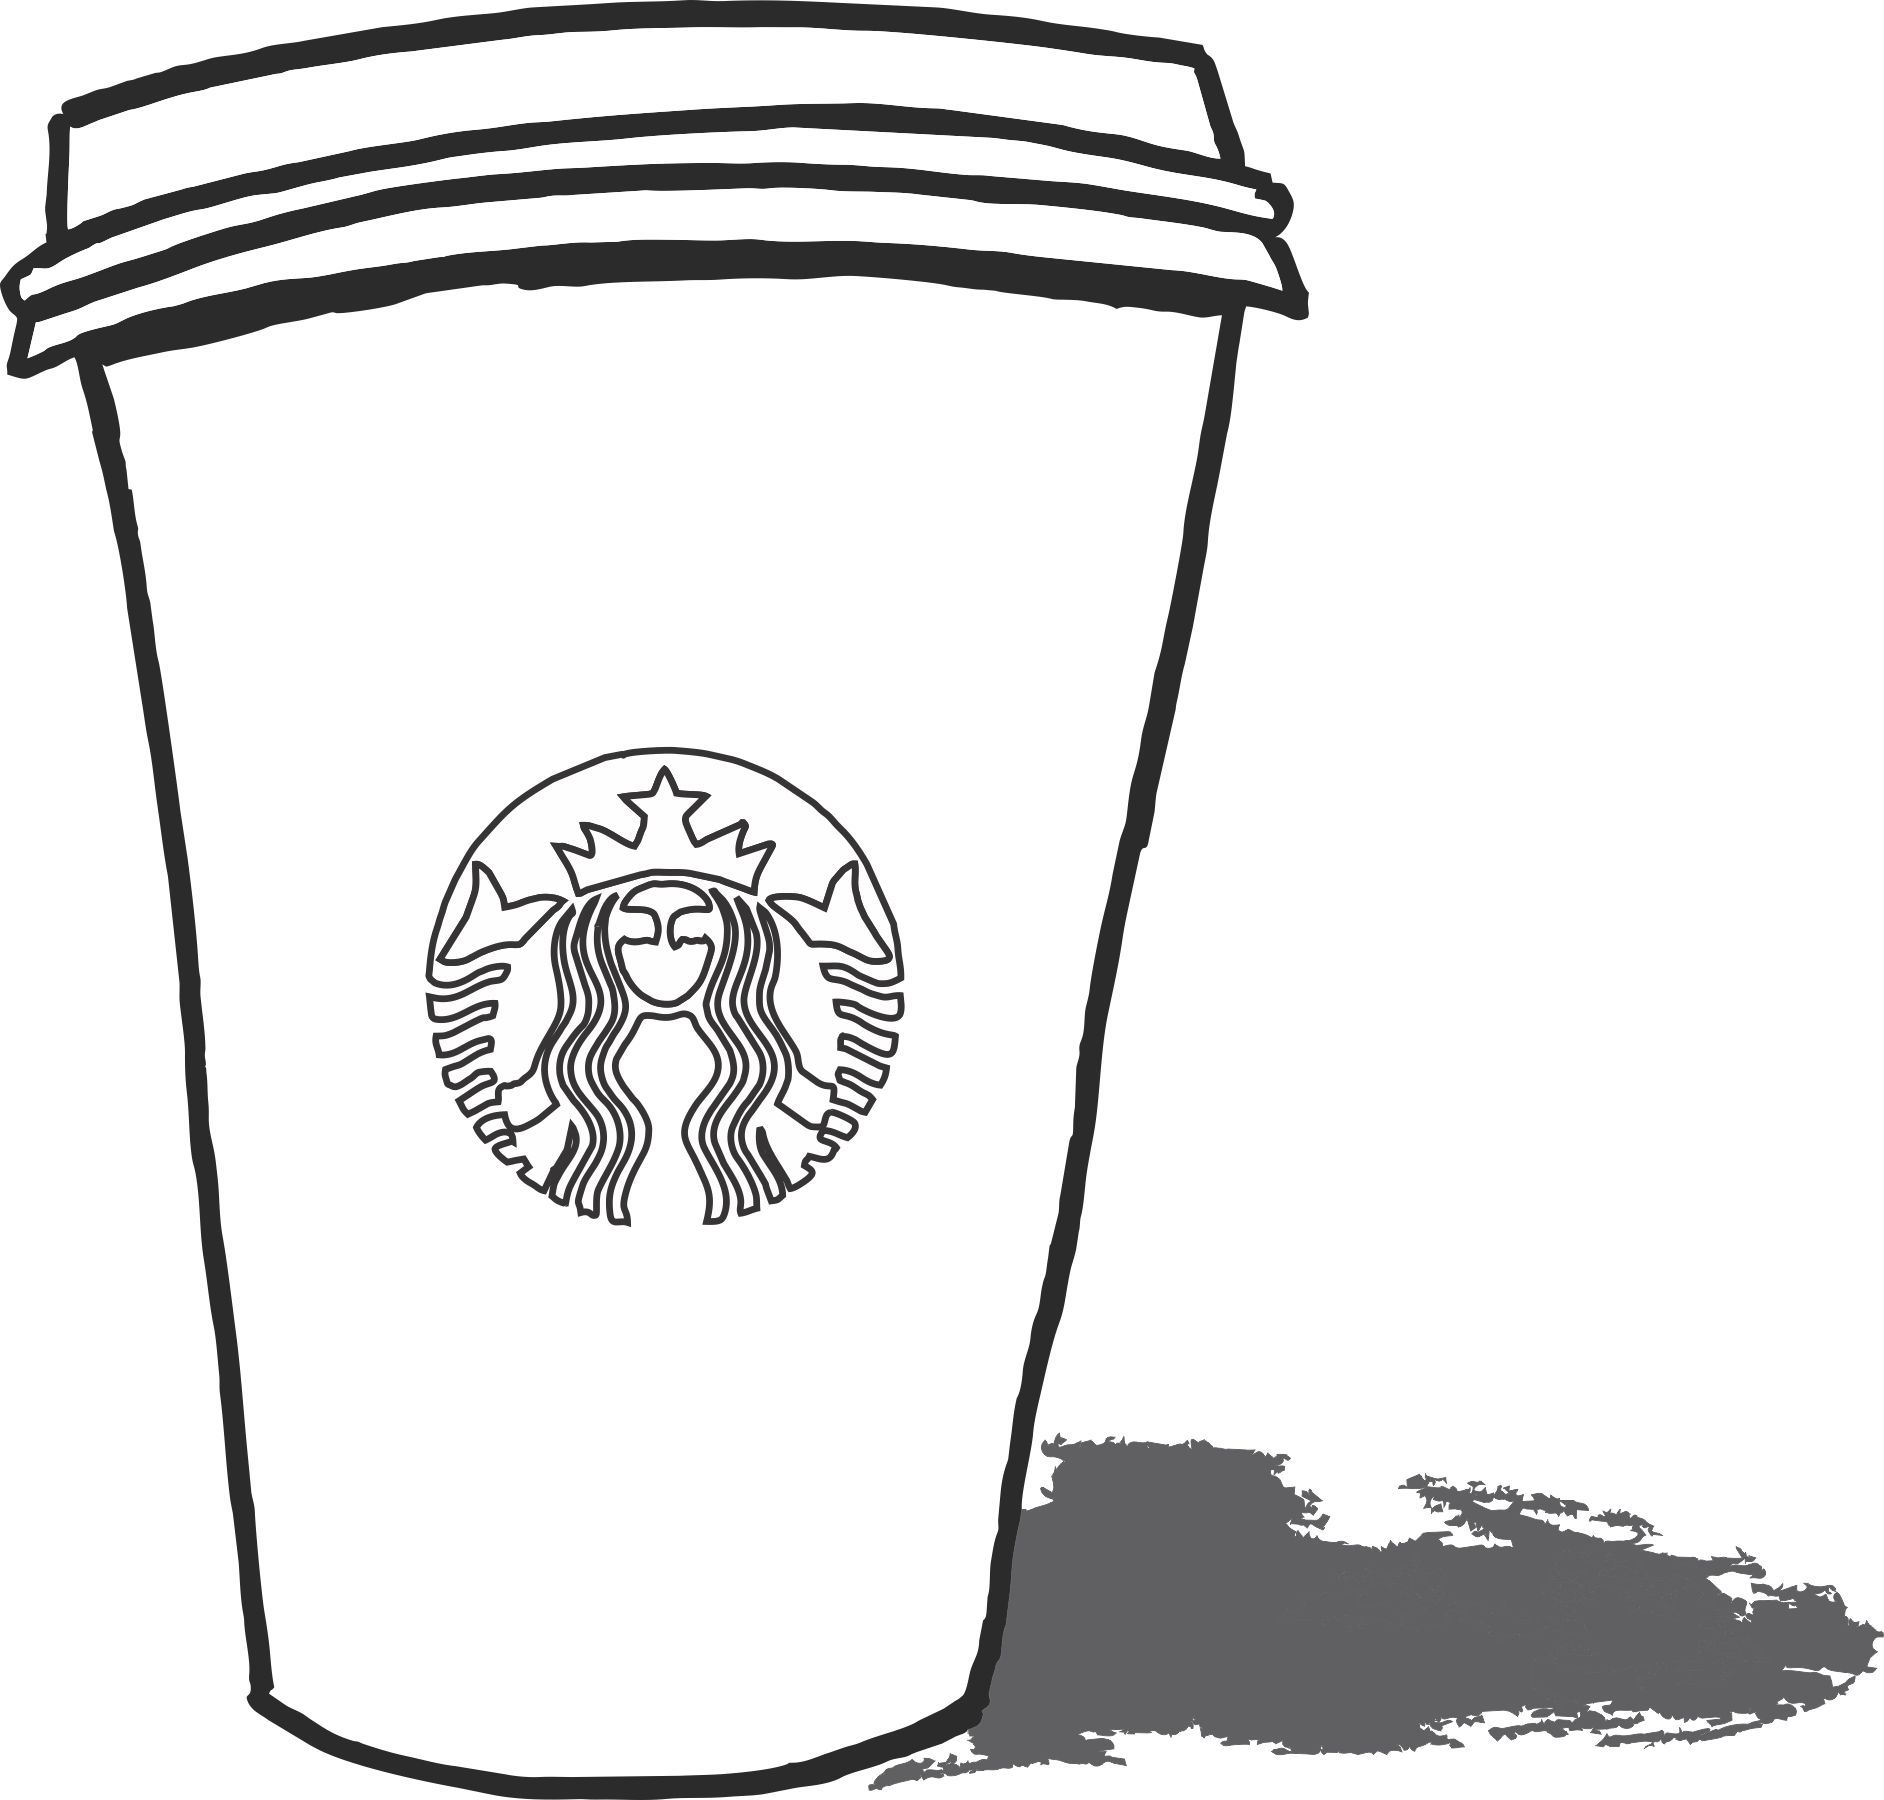 Starbucks Coloring Pages To Print Activity Shelter In 2021 Coloring Pages Coloring Pages To Print Shopkins Colouring Pages